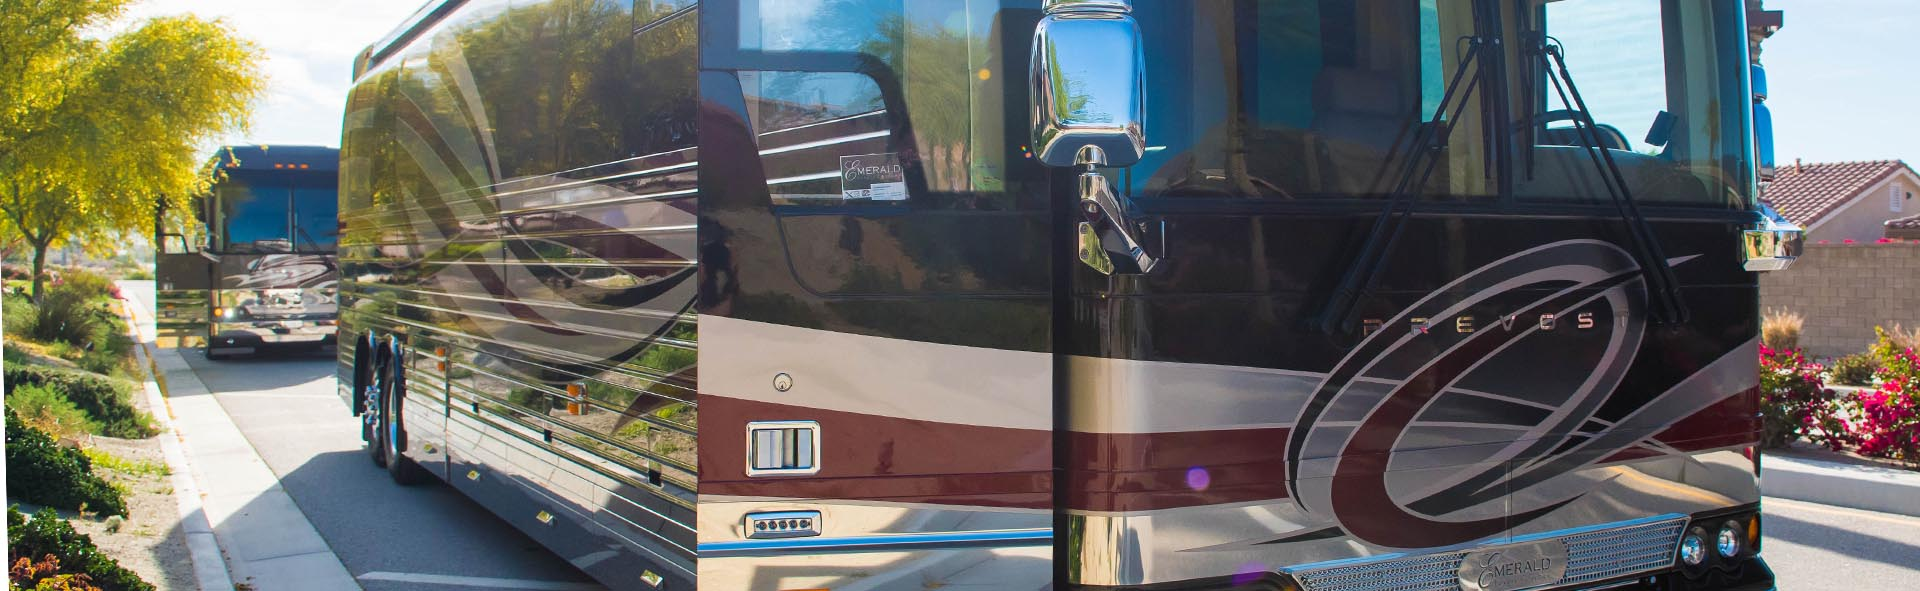 tips-to-secure-your-rv